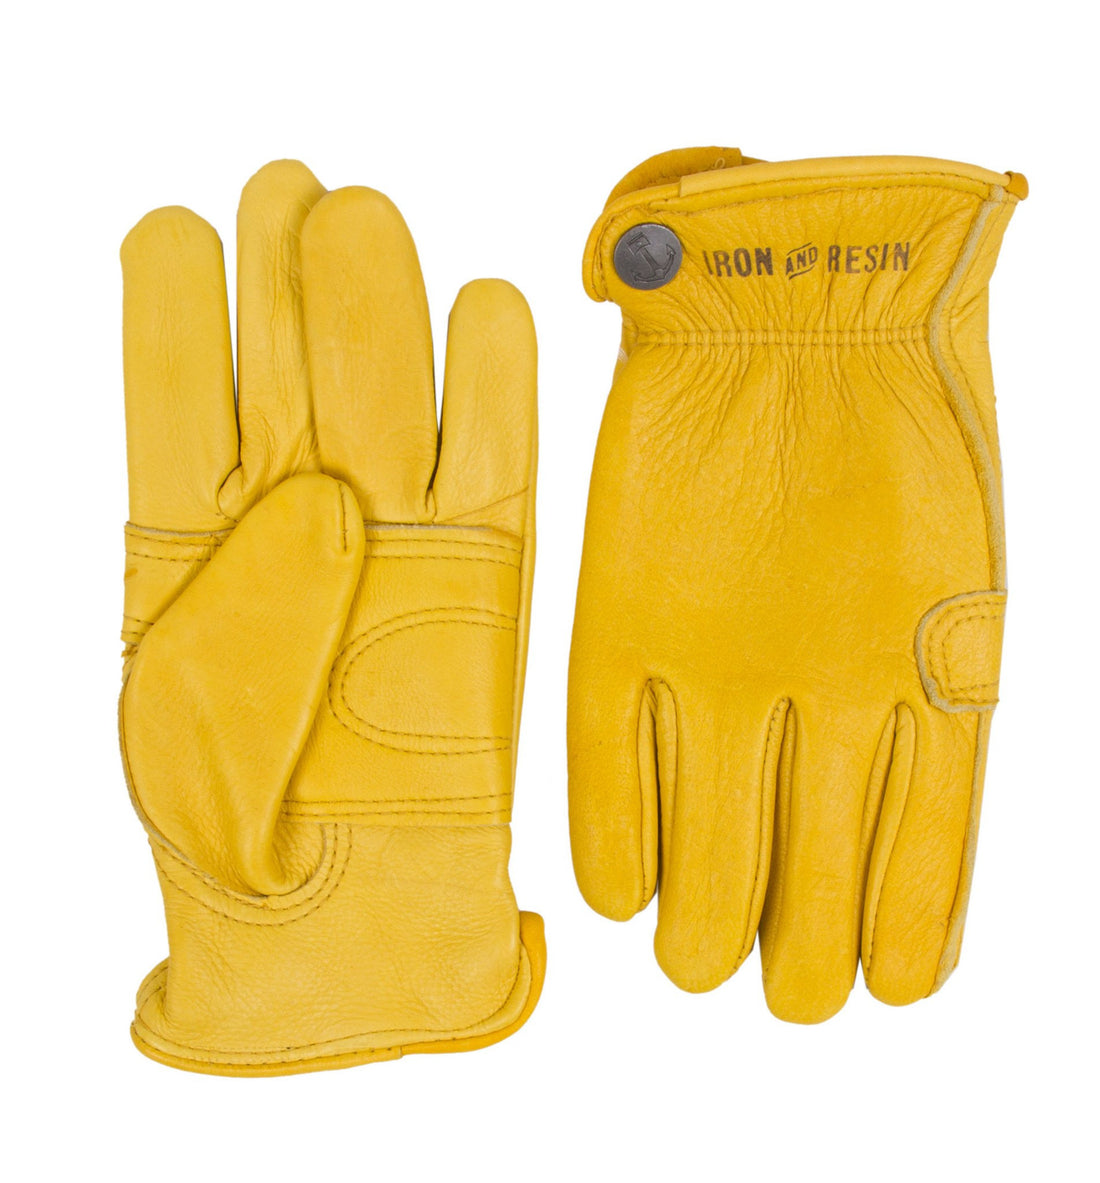 Cafe Glove - Moto: Gloves - Iron and Resin